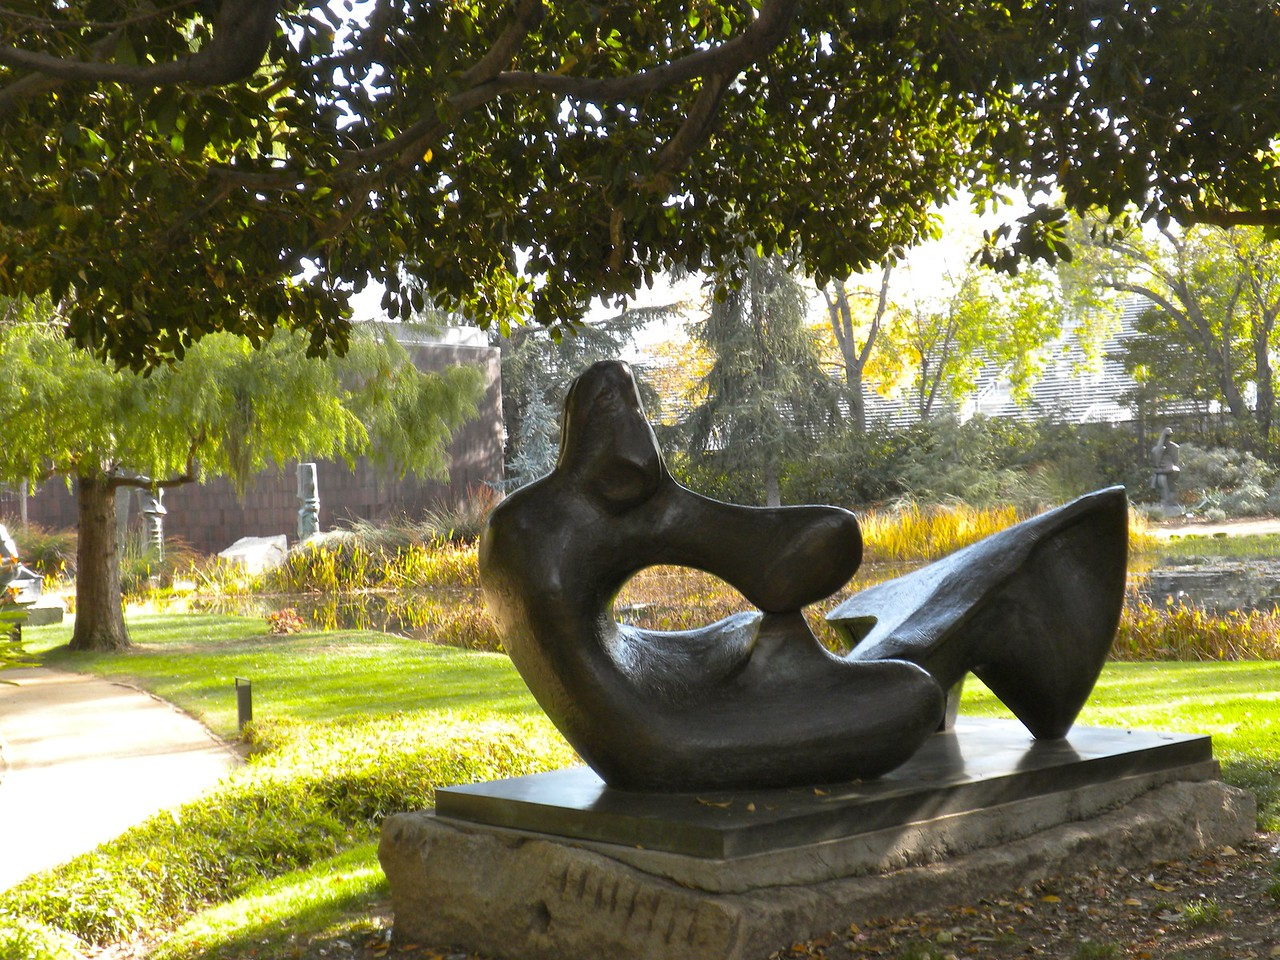 Visit to Norton Simon's Museum in Pasadena with Betty on December 29, 2011